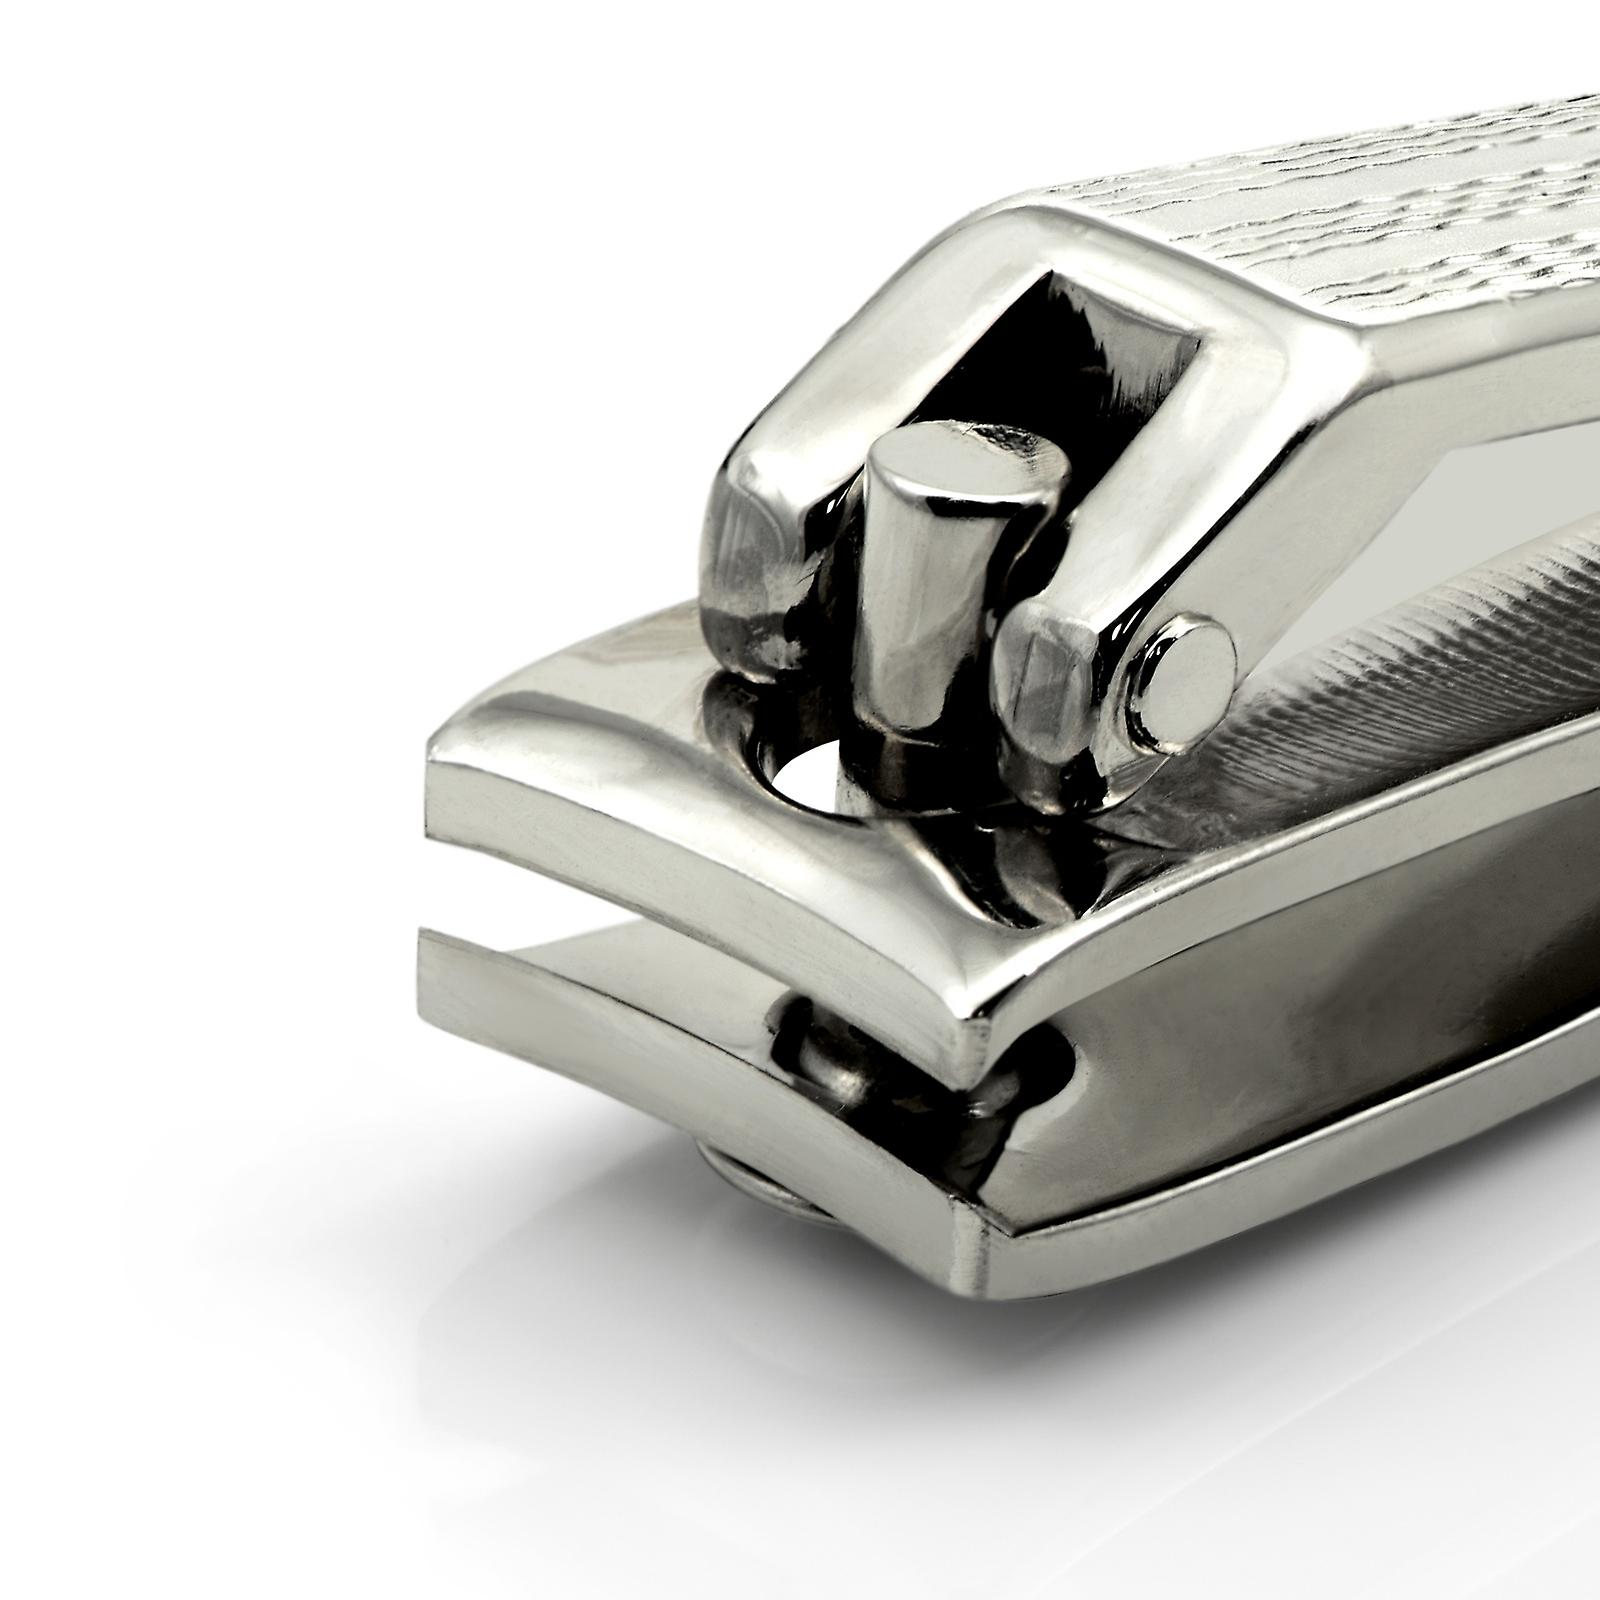 Hans Kniebes Small Nail Clippers, made in Solingen (Germany)